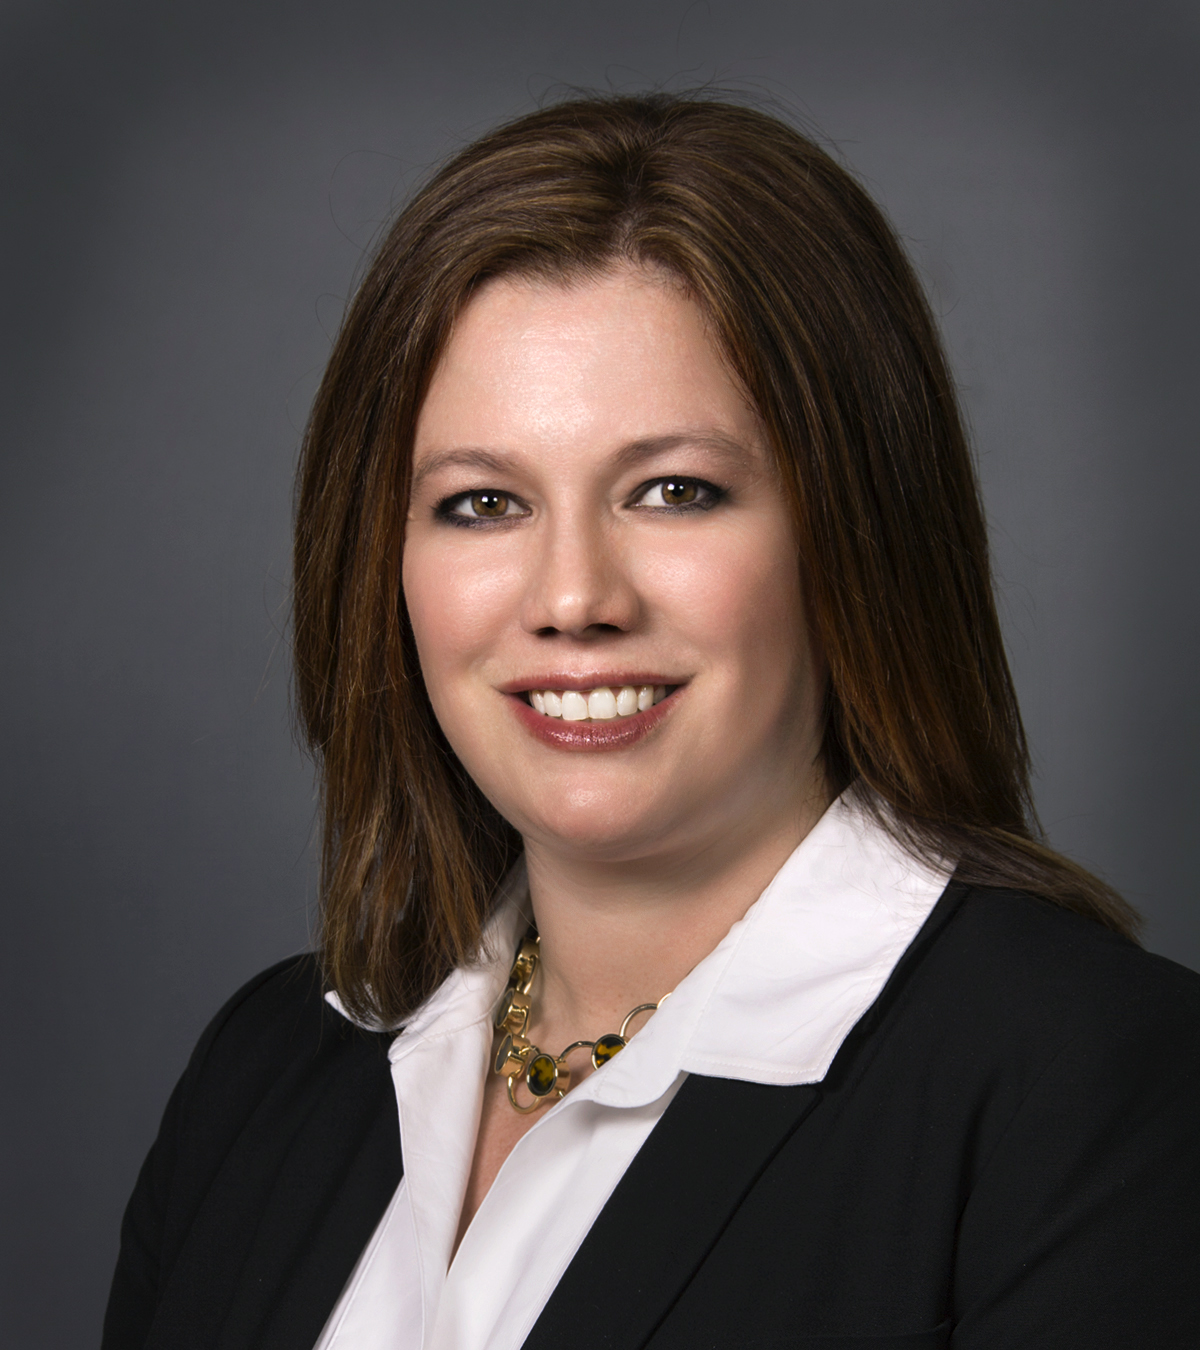 Jessica Birkenhauer Rawe '99, member of the Board of Directors at the Notre Dame Academy catholic all-girls school in Covington, Northern Kentucky.